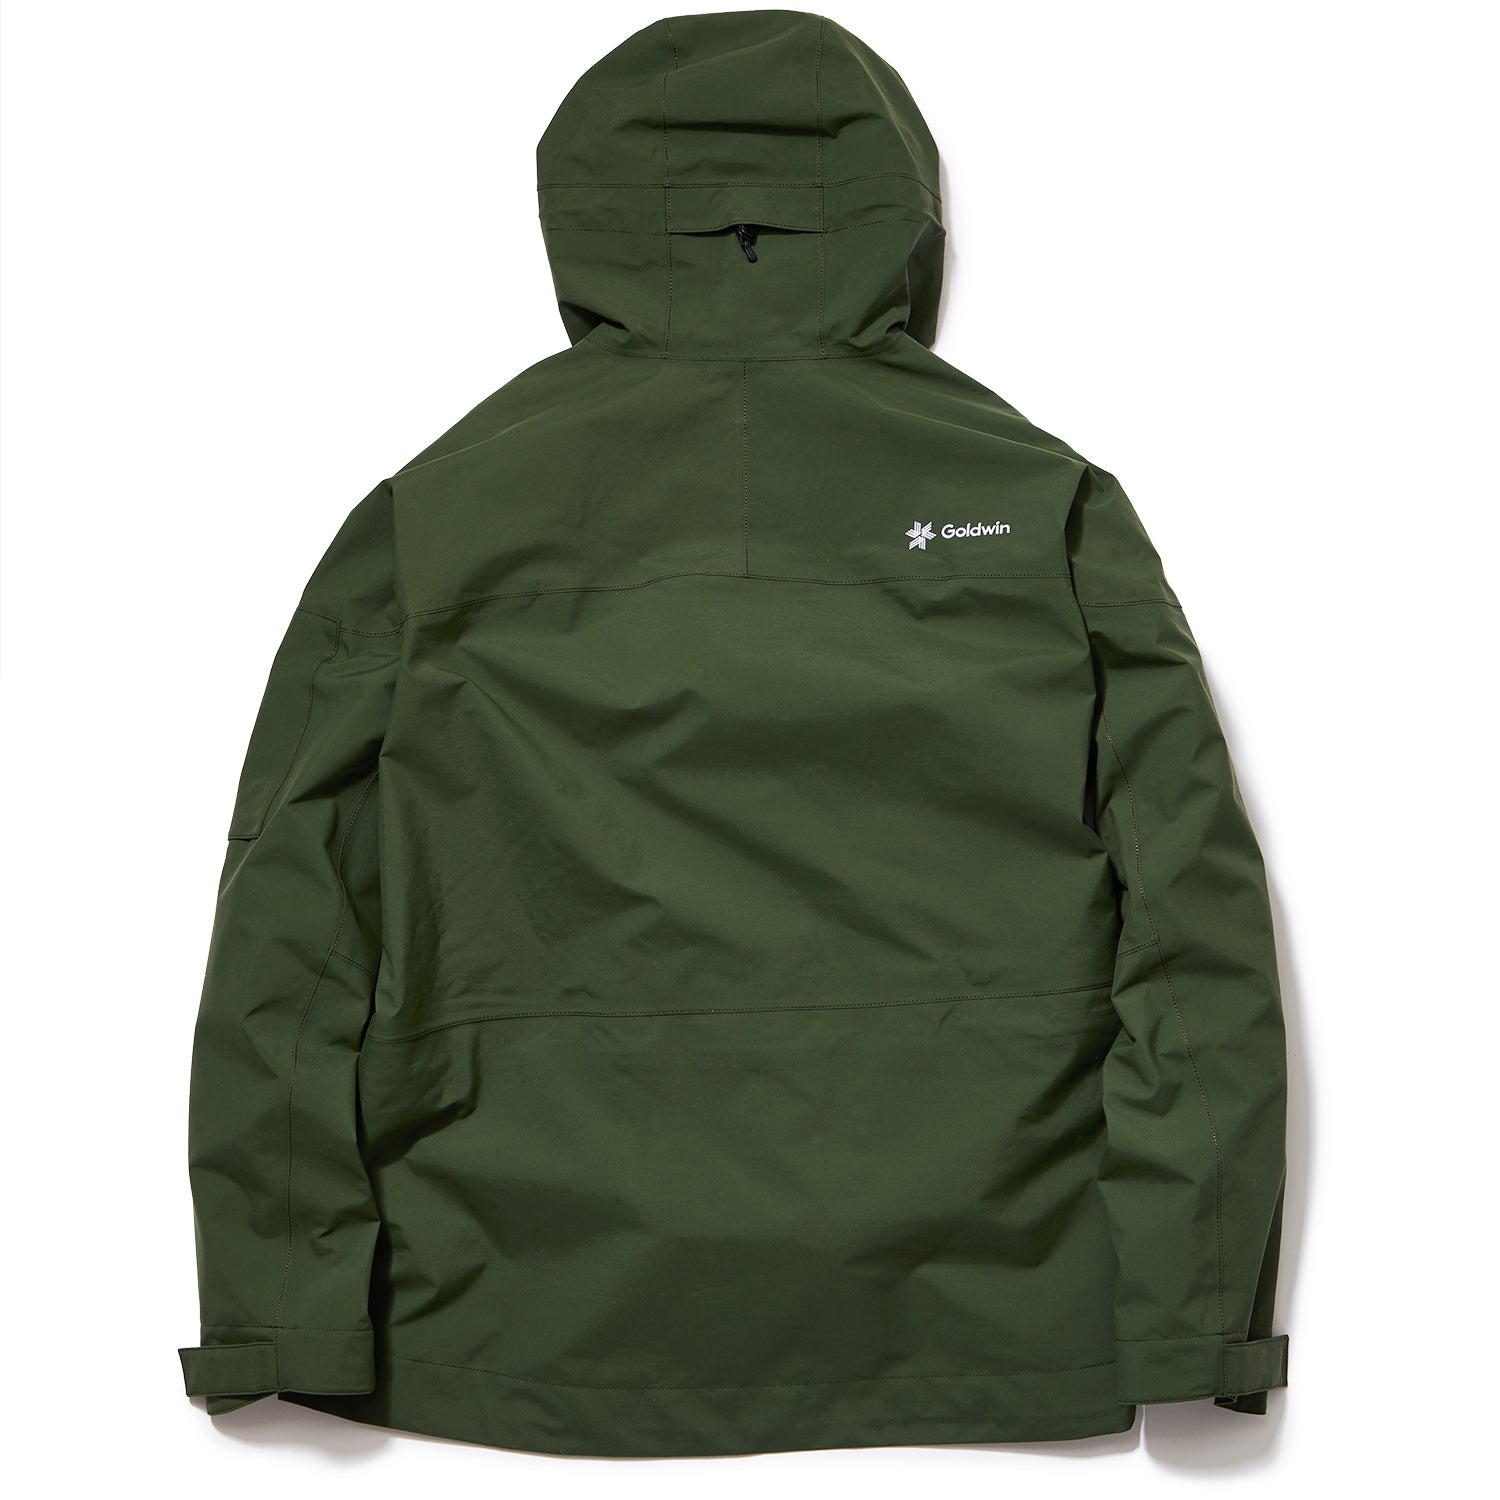 GORE-TEX SNOW DWELLERS JACKET BLACK